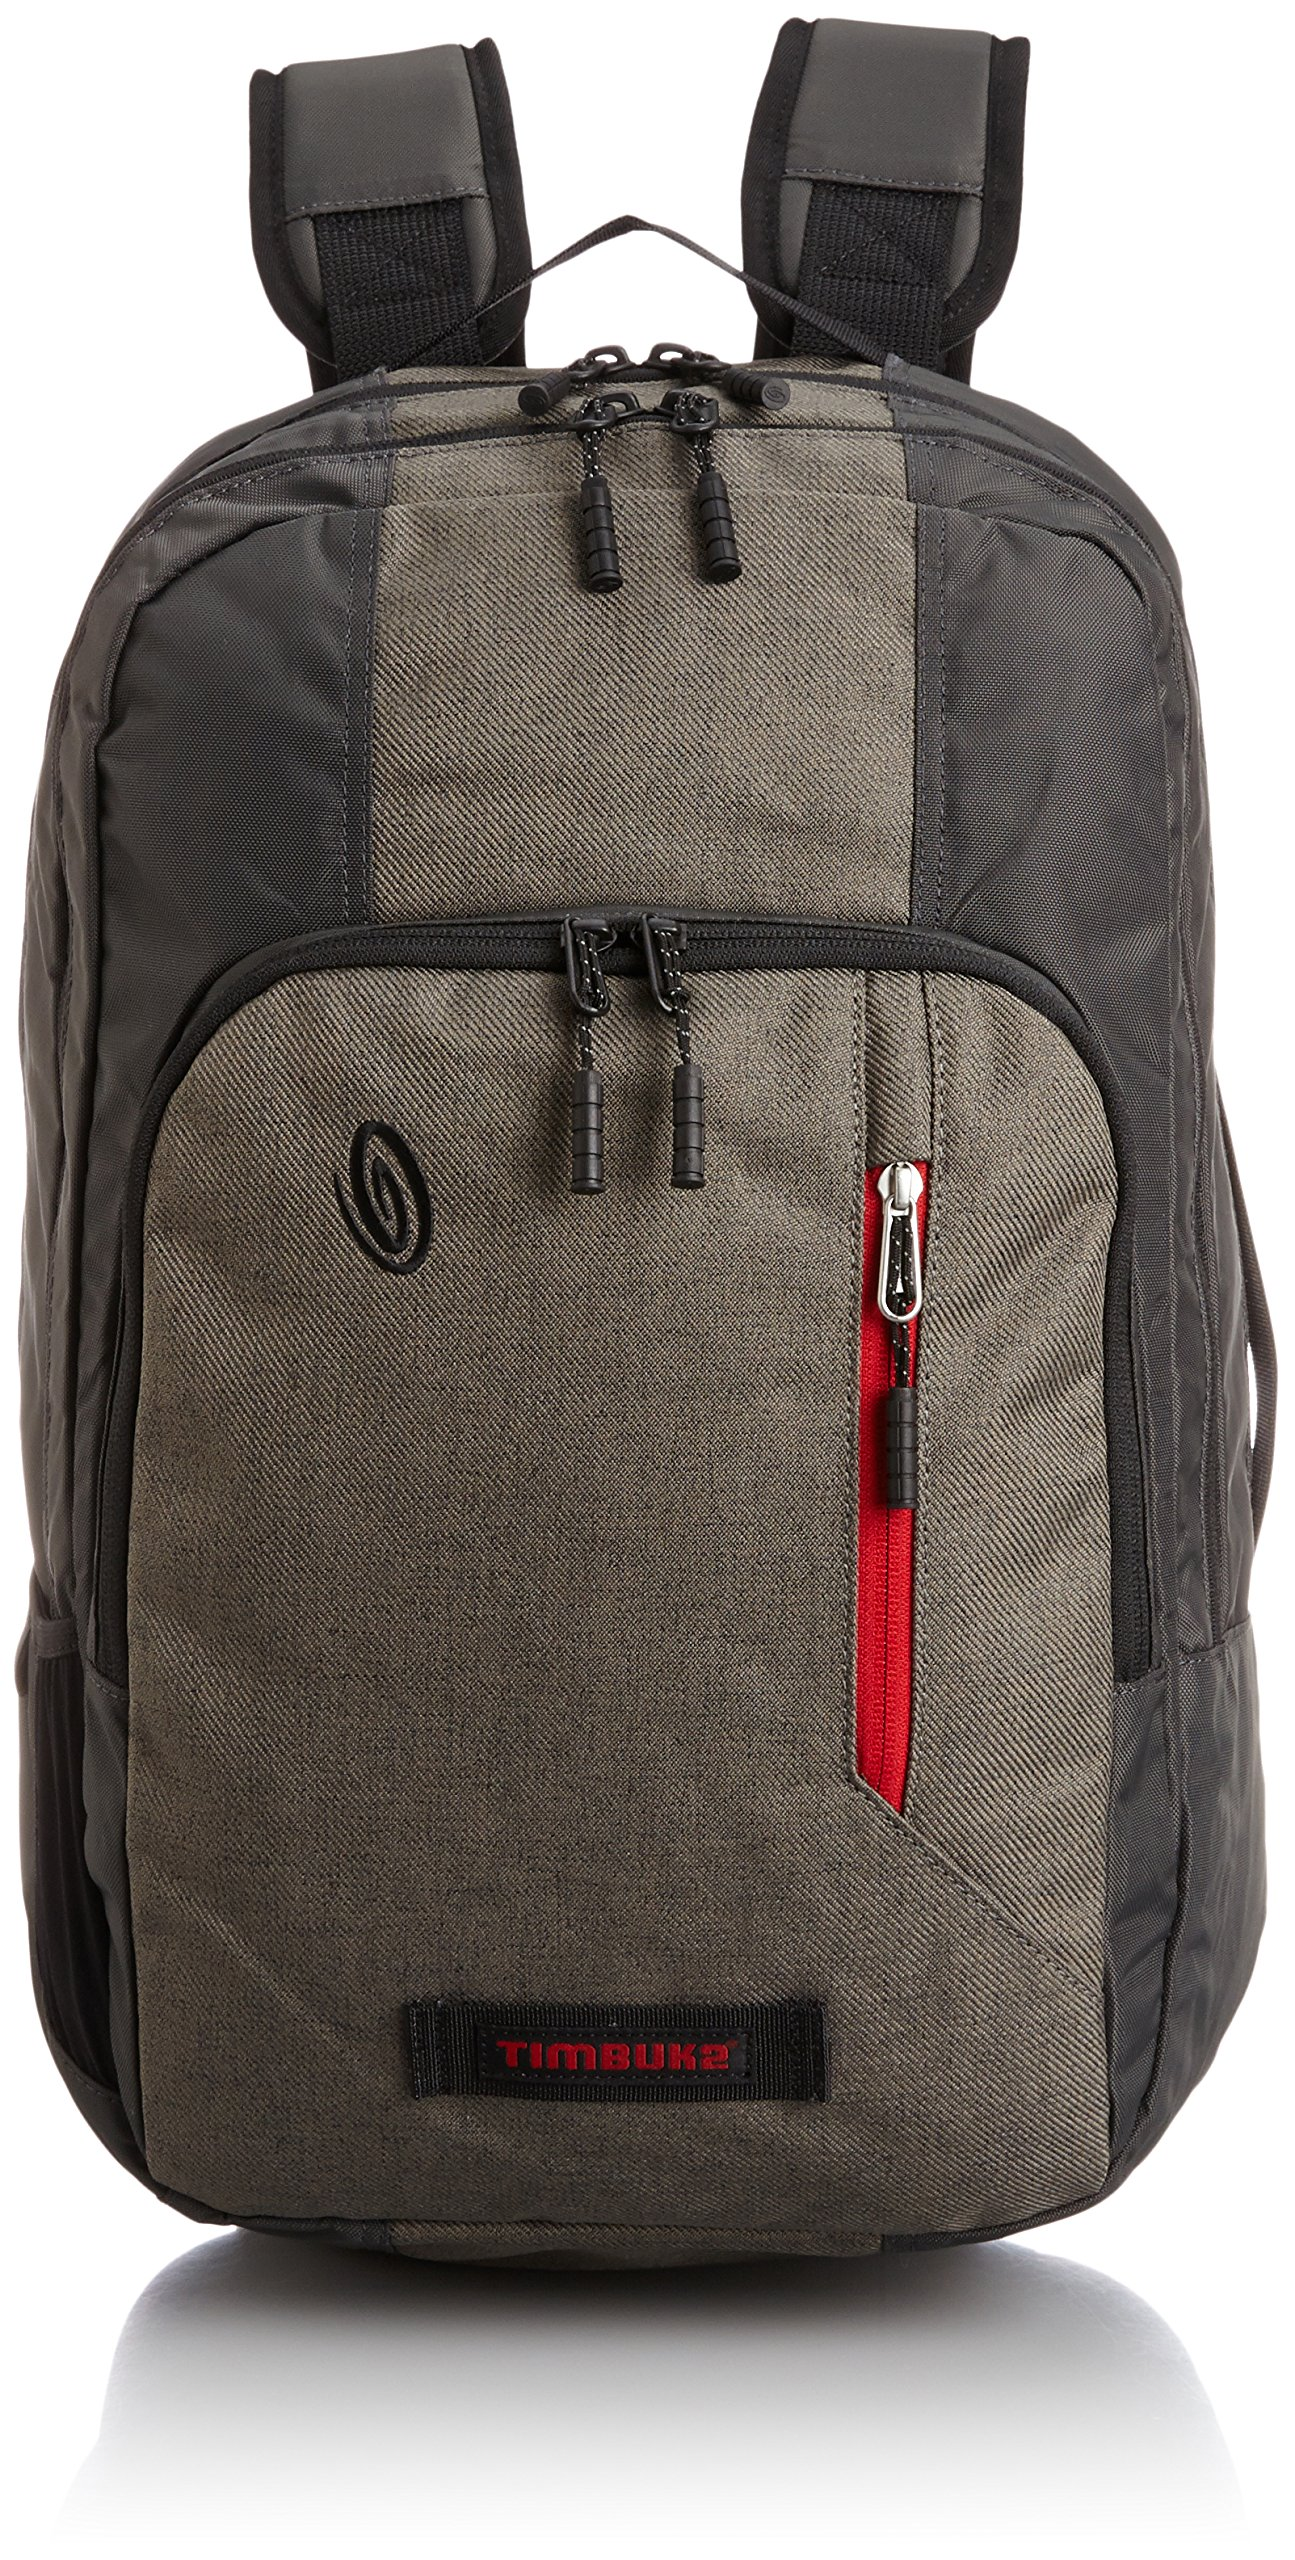 Timbuk2 Uptown Laptop Travel-Friendly Backpack - BSA Soar